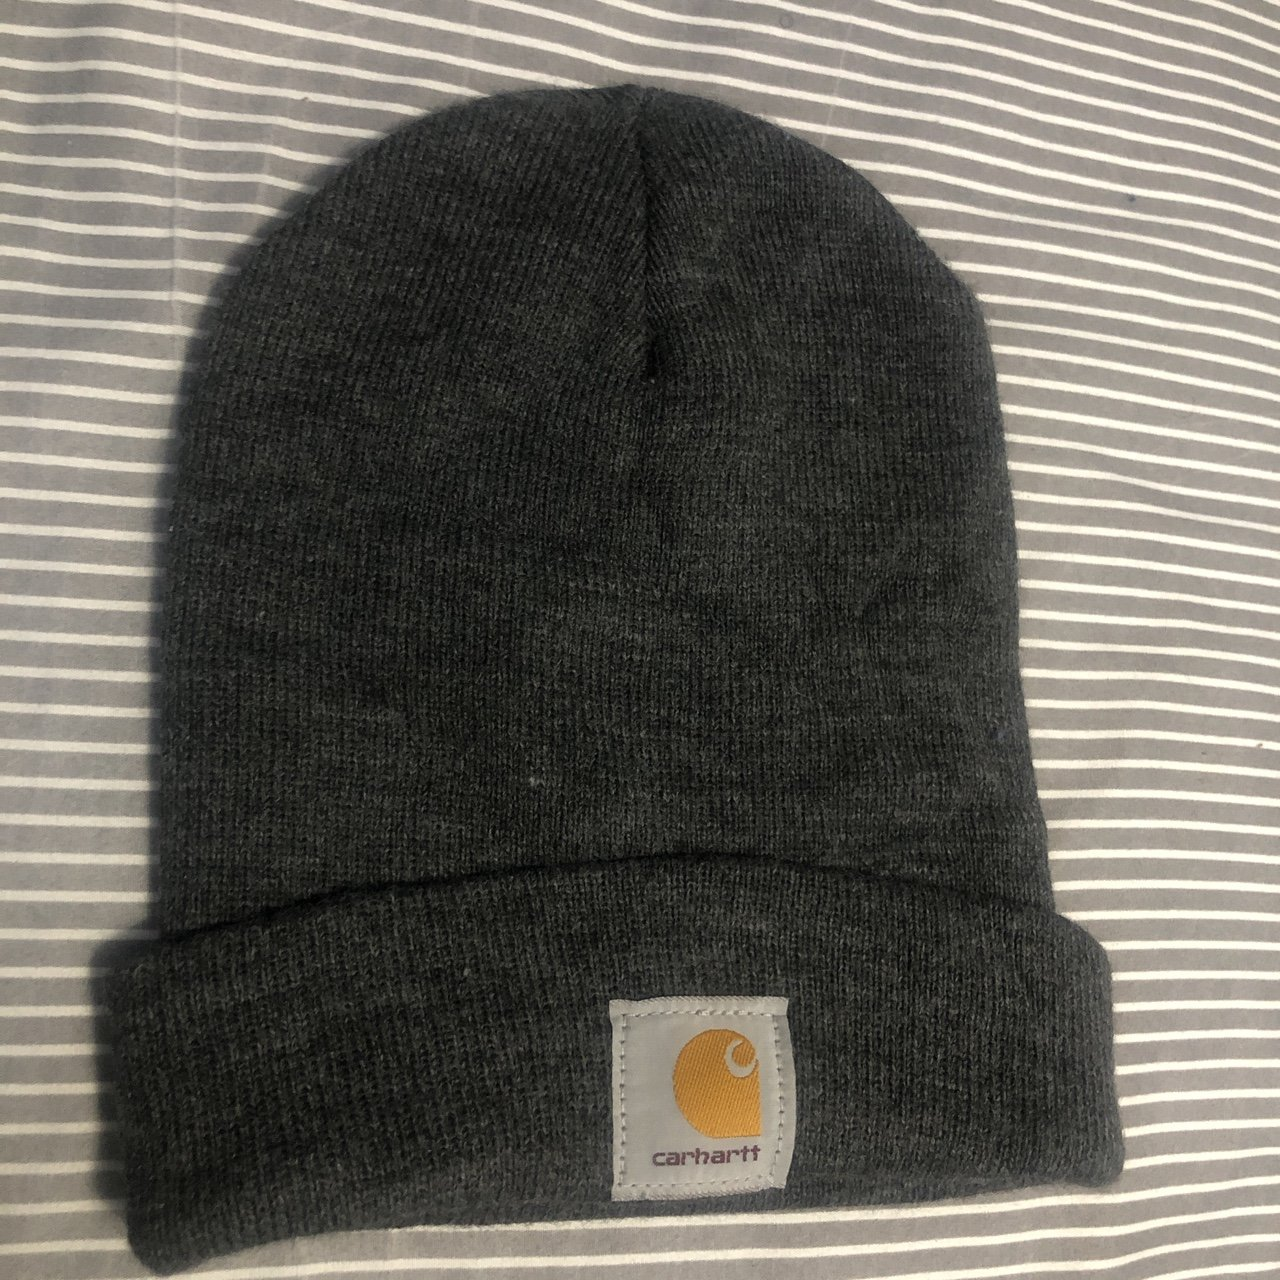 76e1ea2539d Carhartt beanie Gray One size fits all